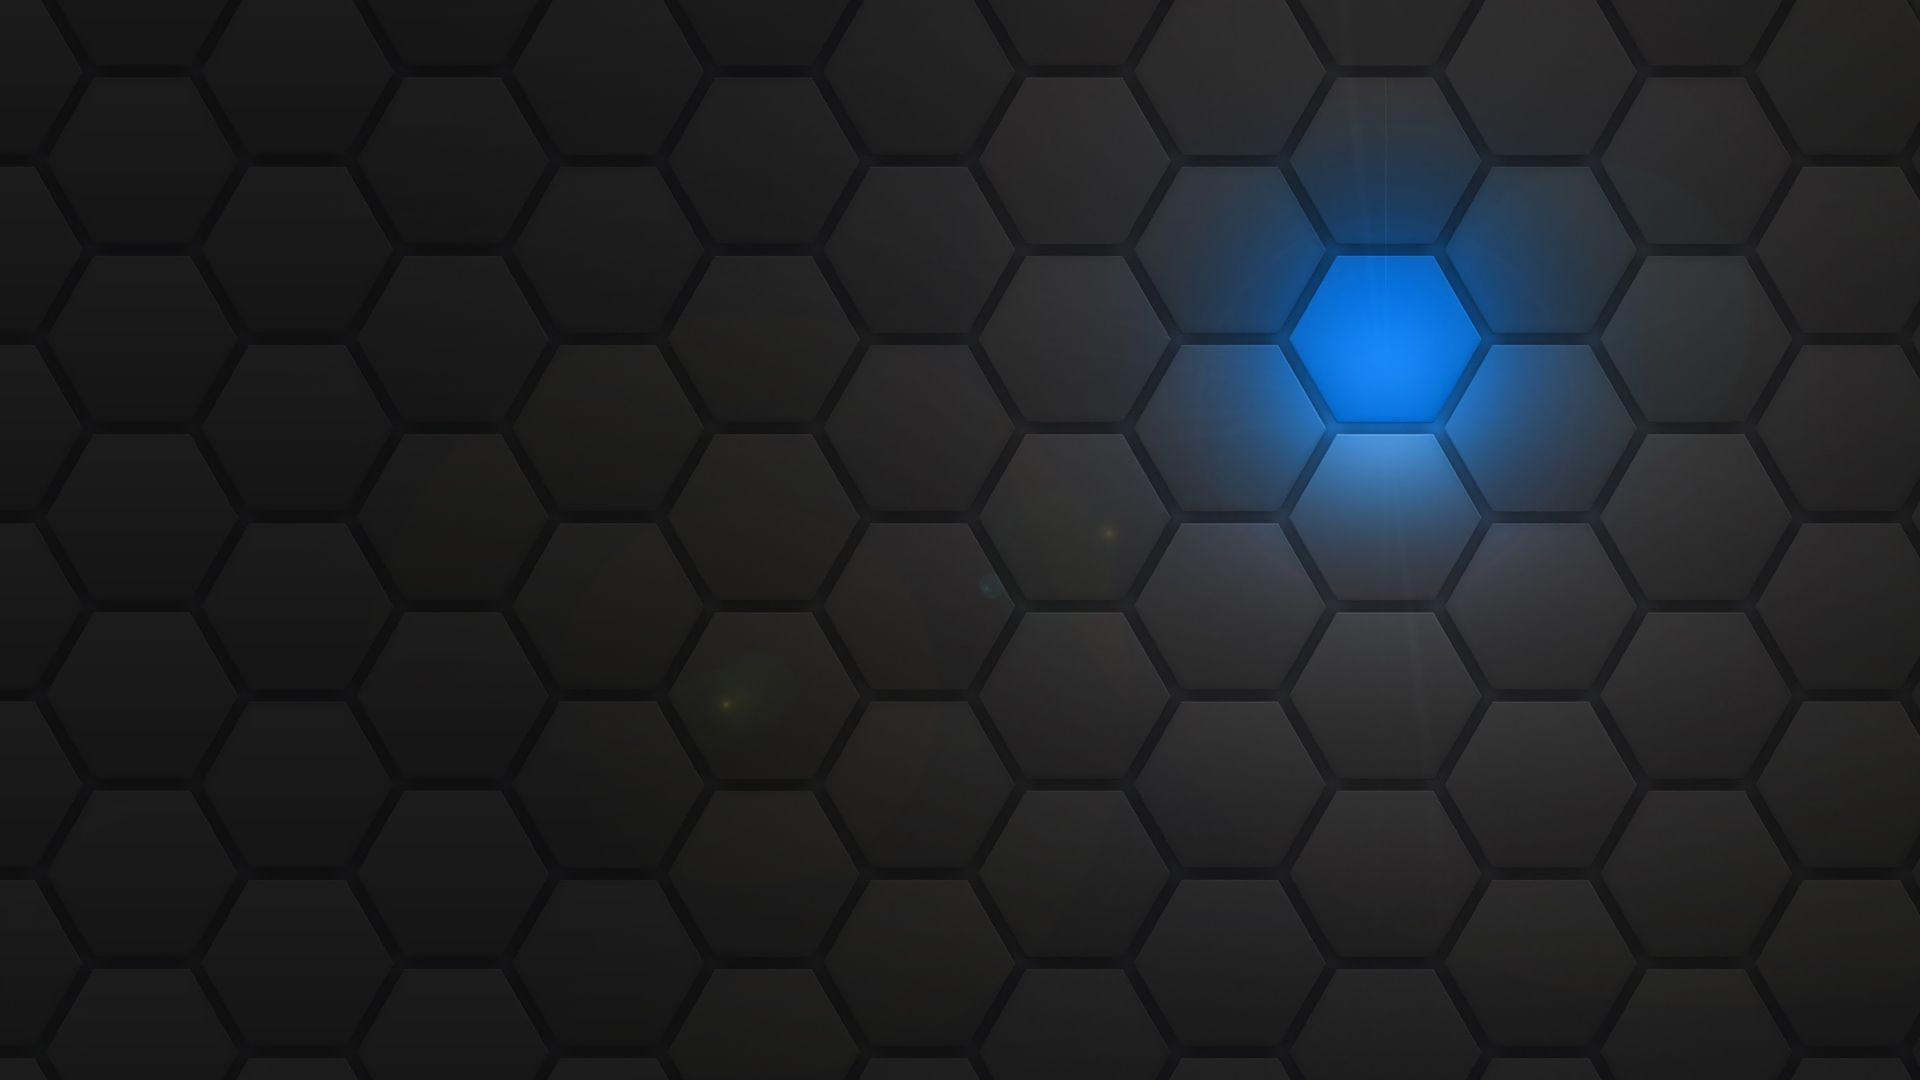 Res: 1920x1080, Blue light behind the honeycomb pattern Wallpaper 29001